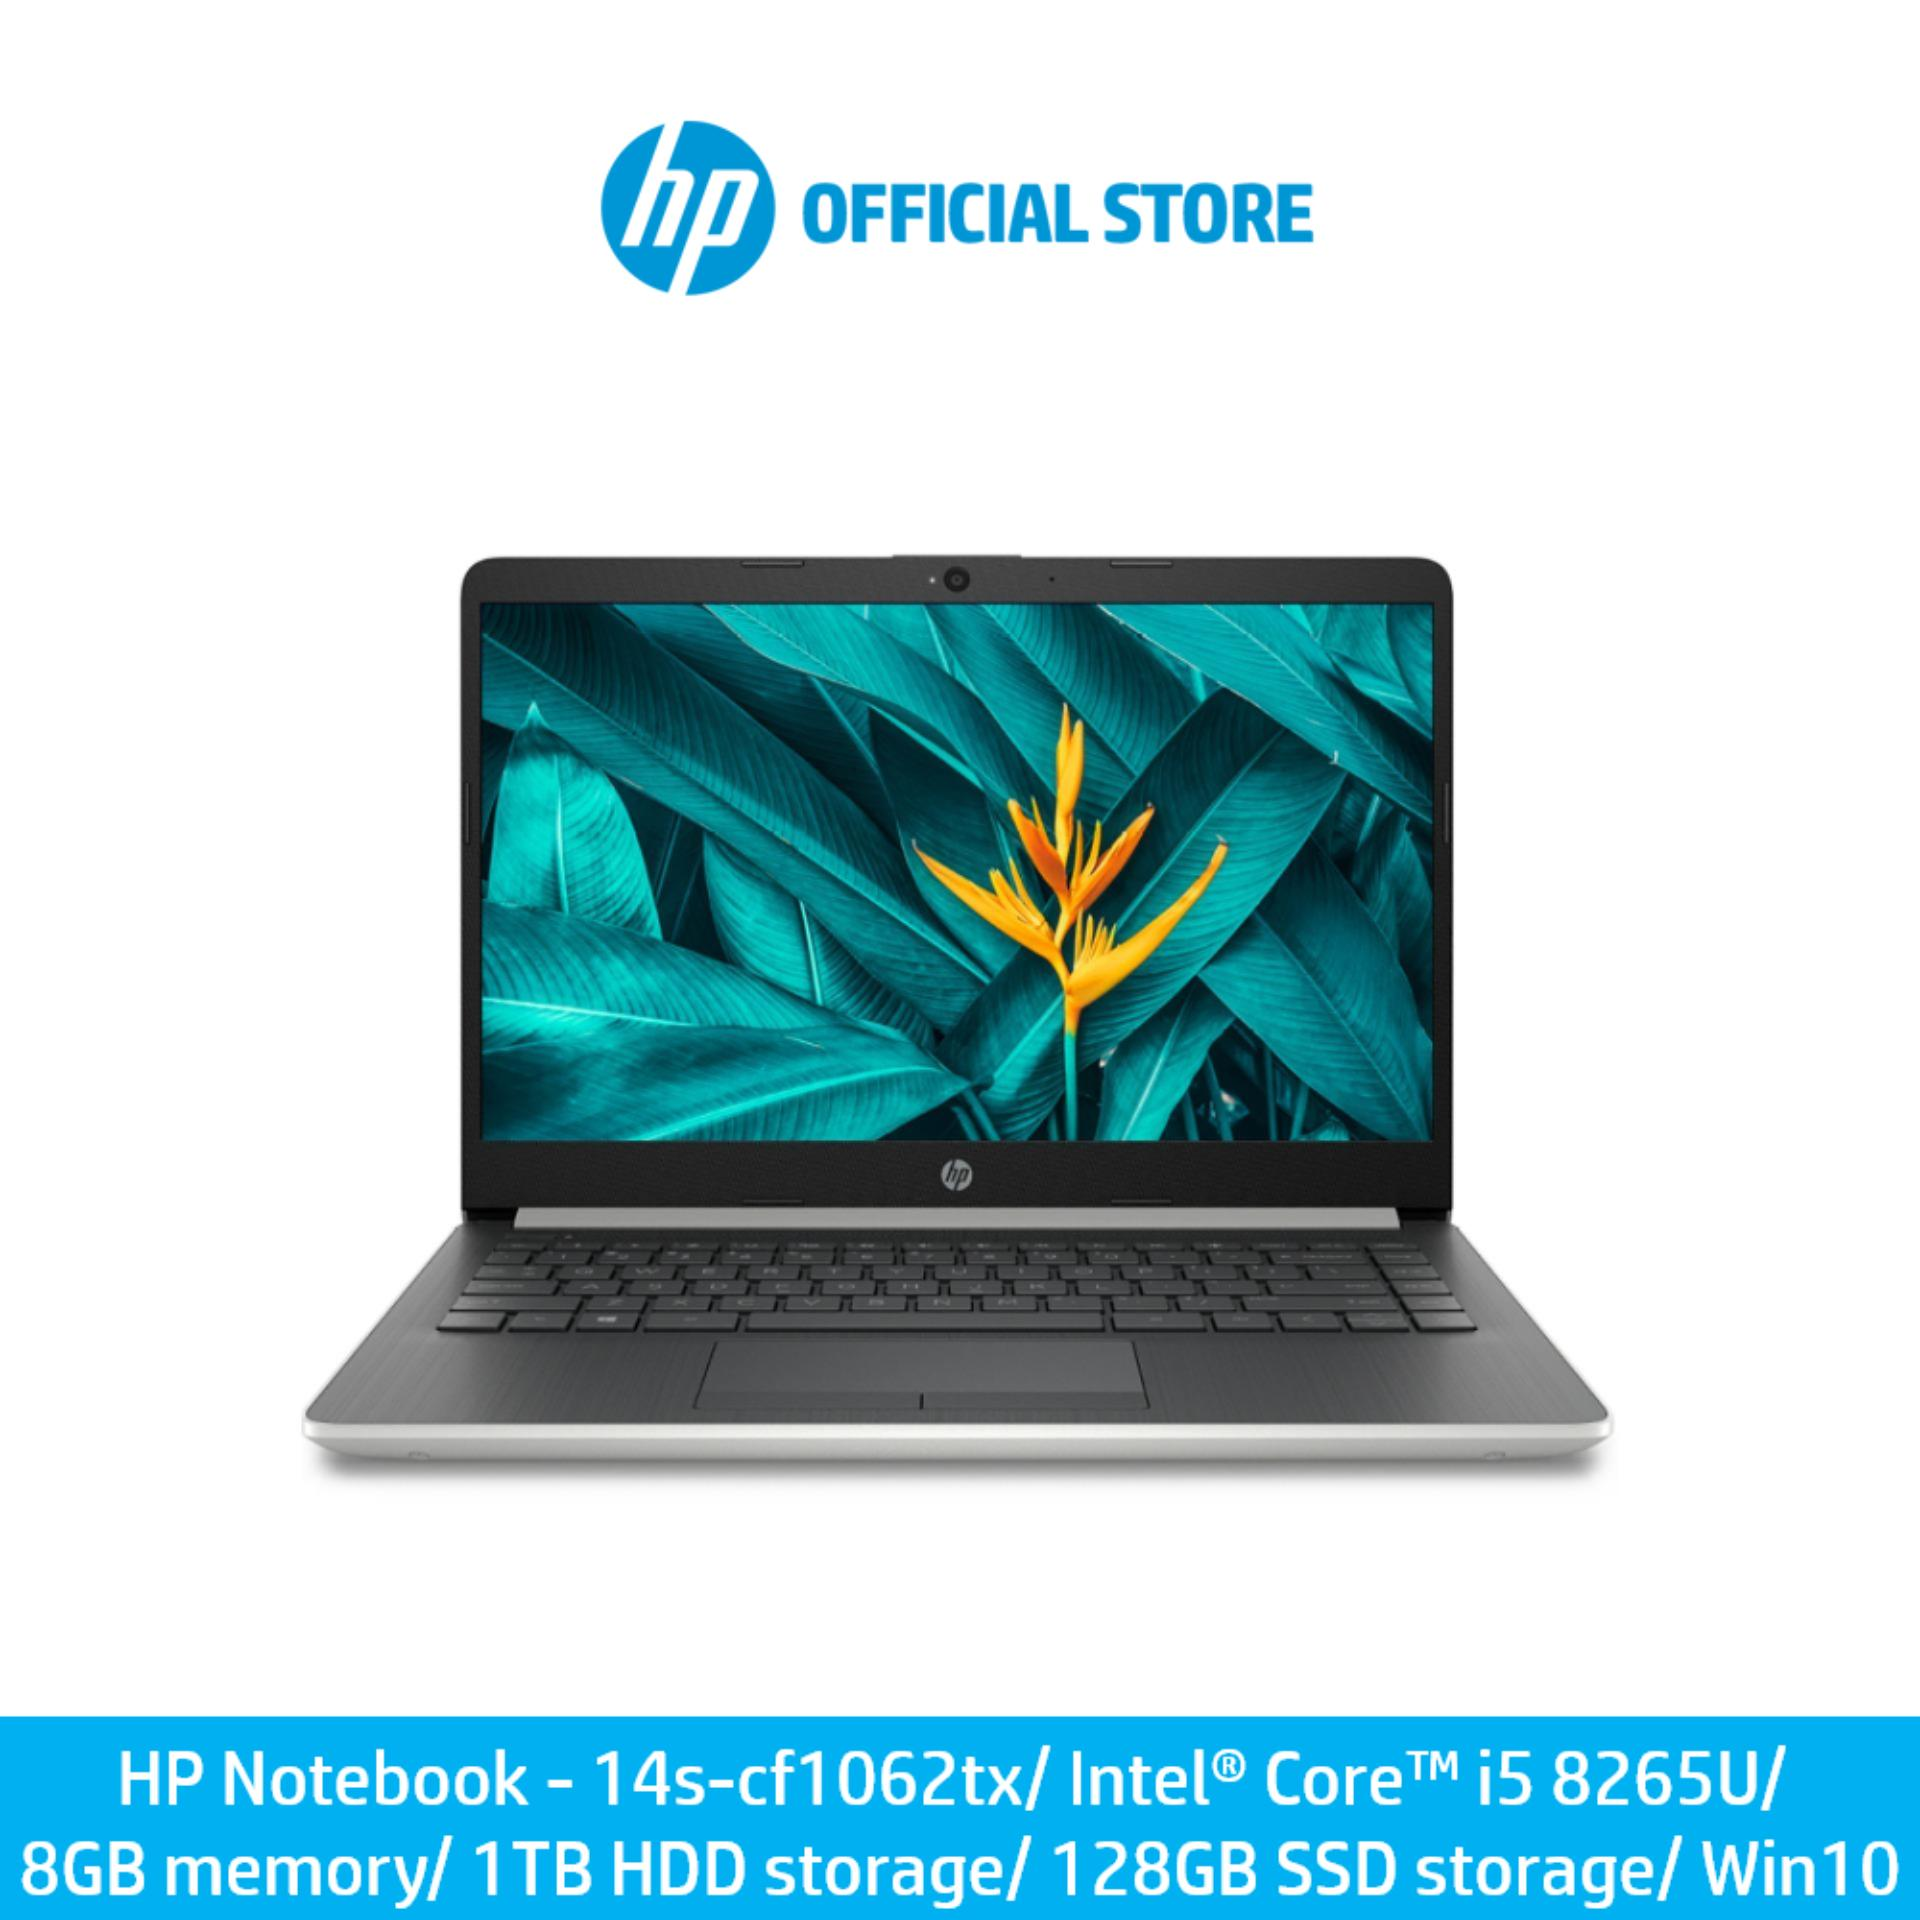 HP Notebook - 14s-cf1062tx/ Intel® Core™ i5 8265U/ 8 GB memory/ 1 TB HDD storage/ 128 GB SSD storage/ Win 10